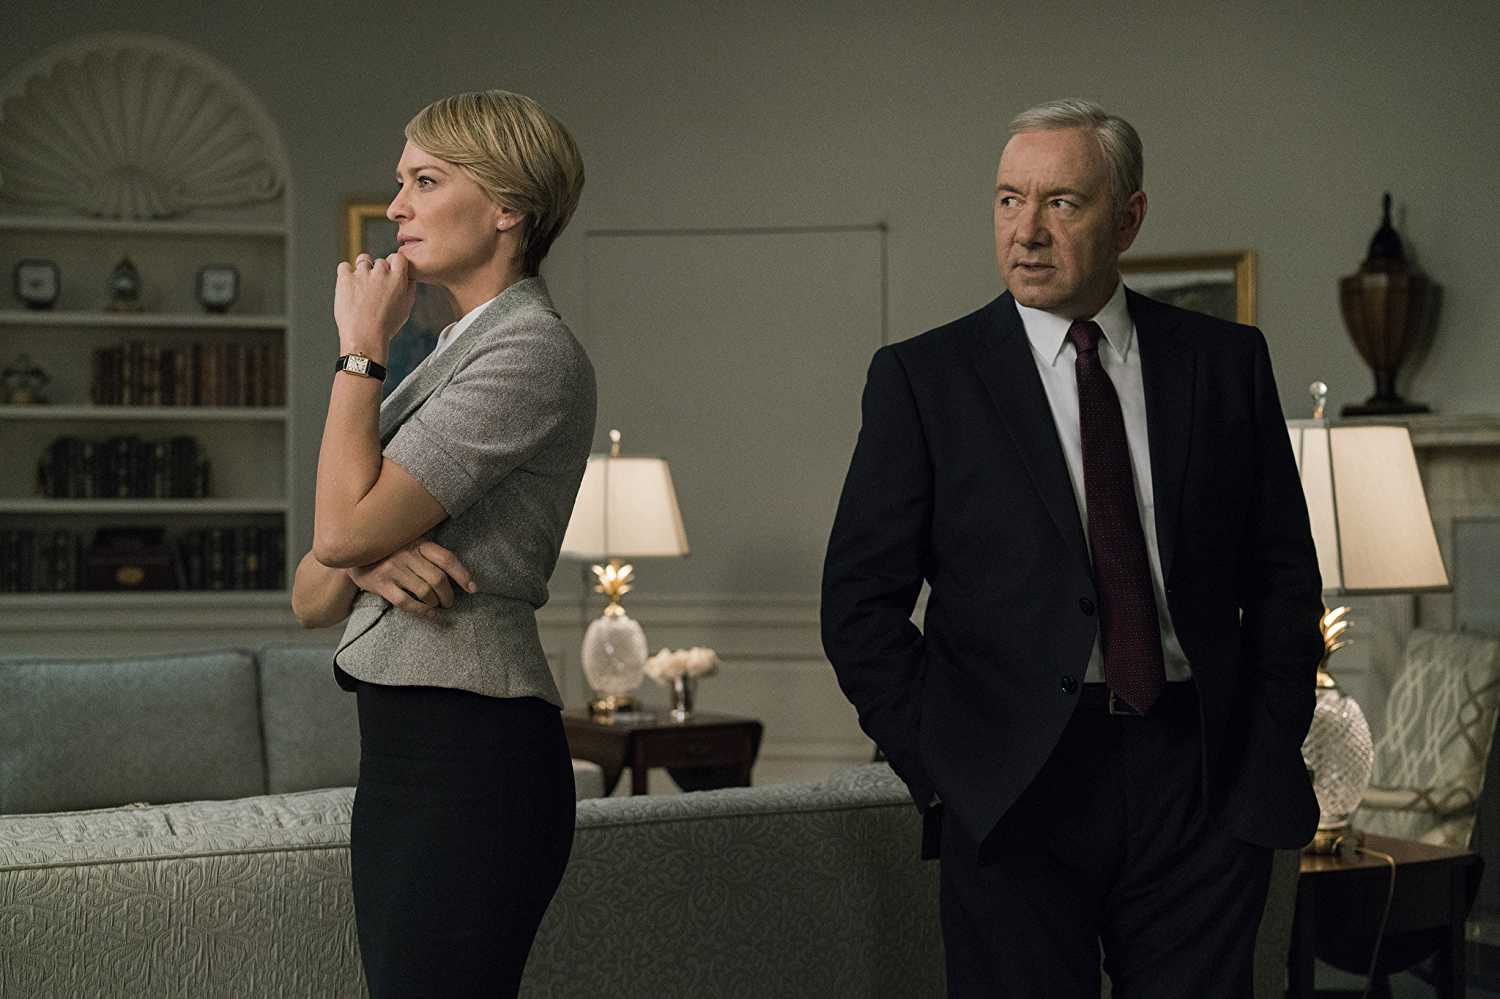 'House of Cards' went through an upheaval after Spacey's firing (Source: IMDb)